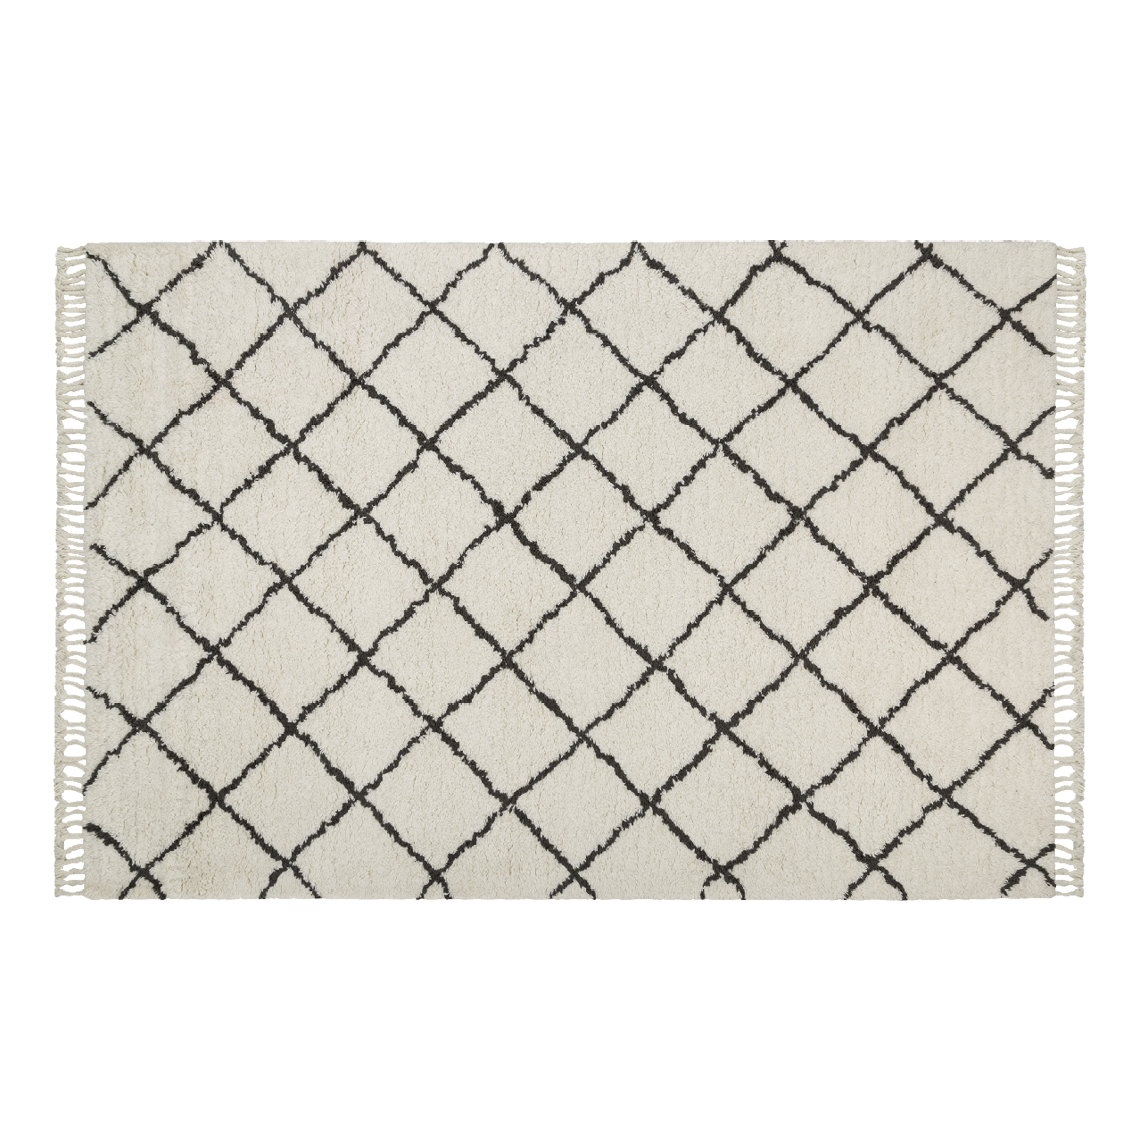 39137 Popular Category - Deep etches_Rugs.png